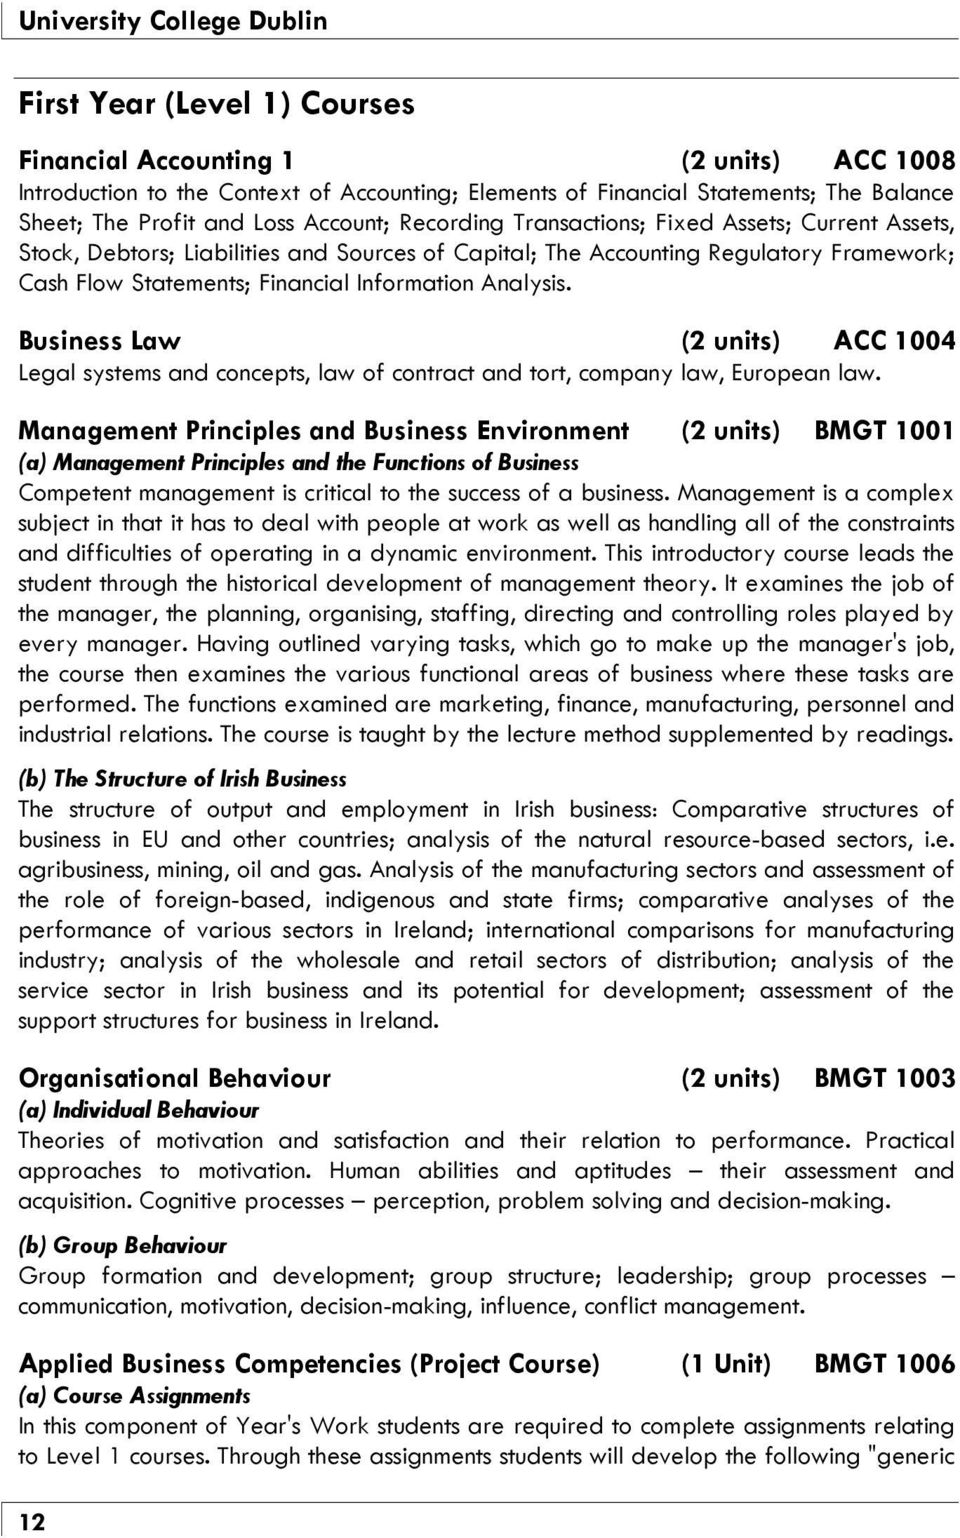 Business Law (2 units) ACC 1004 Legal systems and concepts, law of contract and tort, company law, European law.